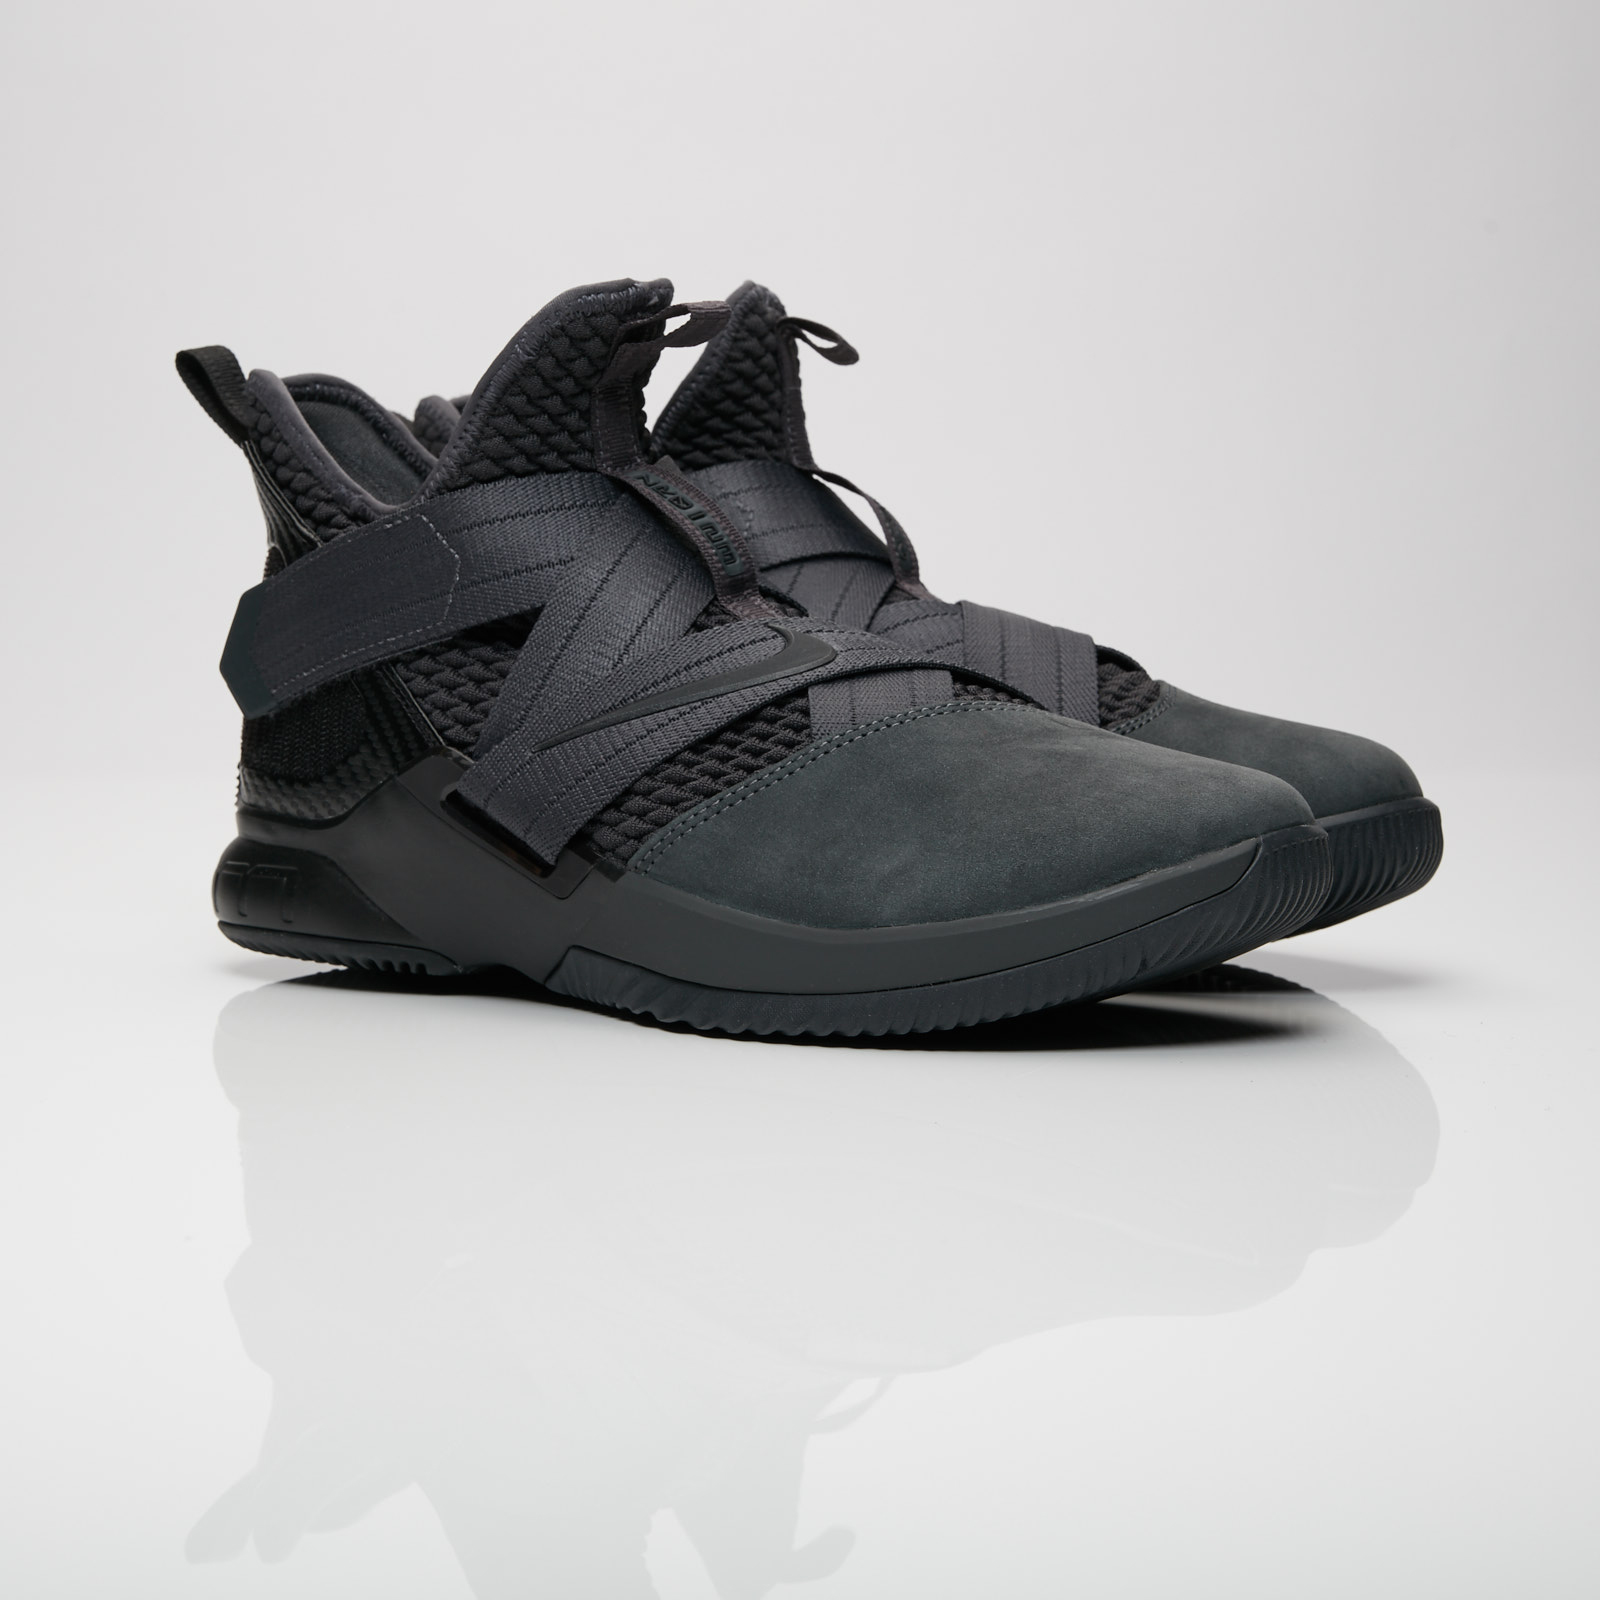 21bc4e1657a Nike Lebron Soldier XII SFG - Ao4054-002 - Sneakersnstuff